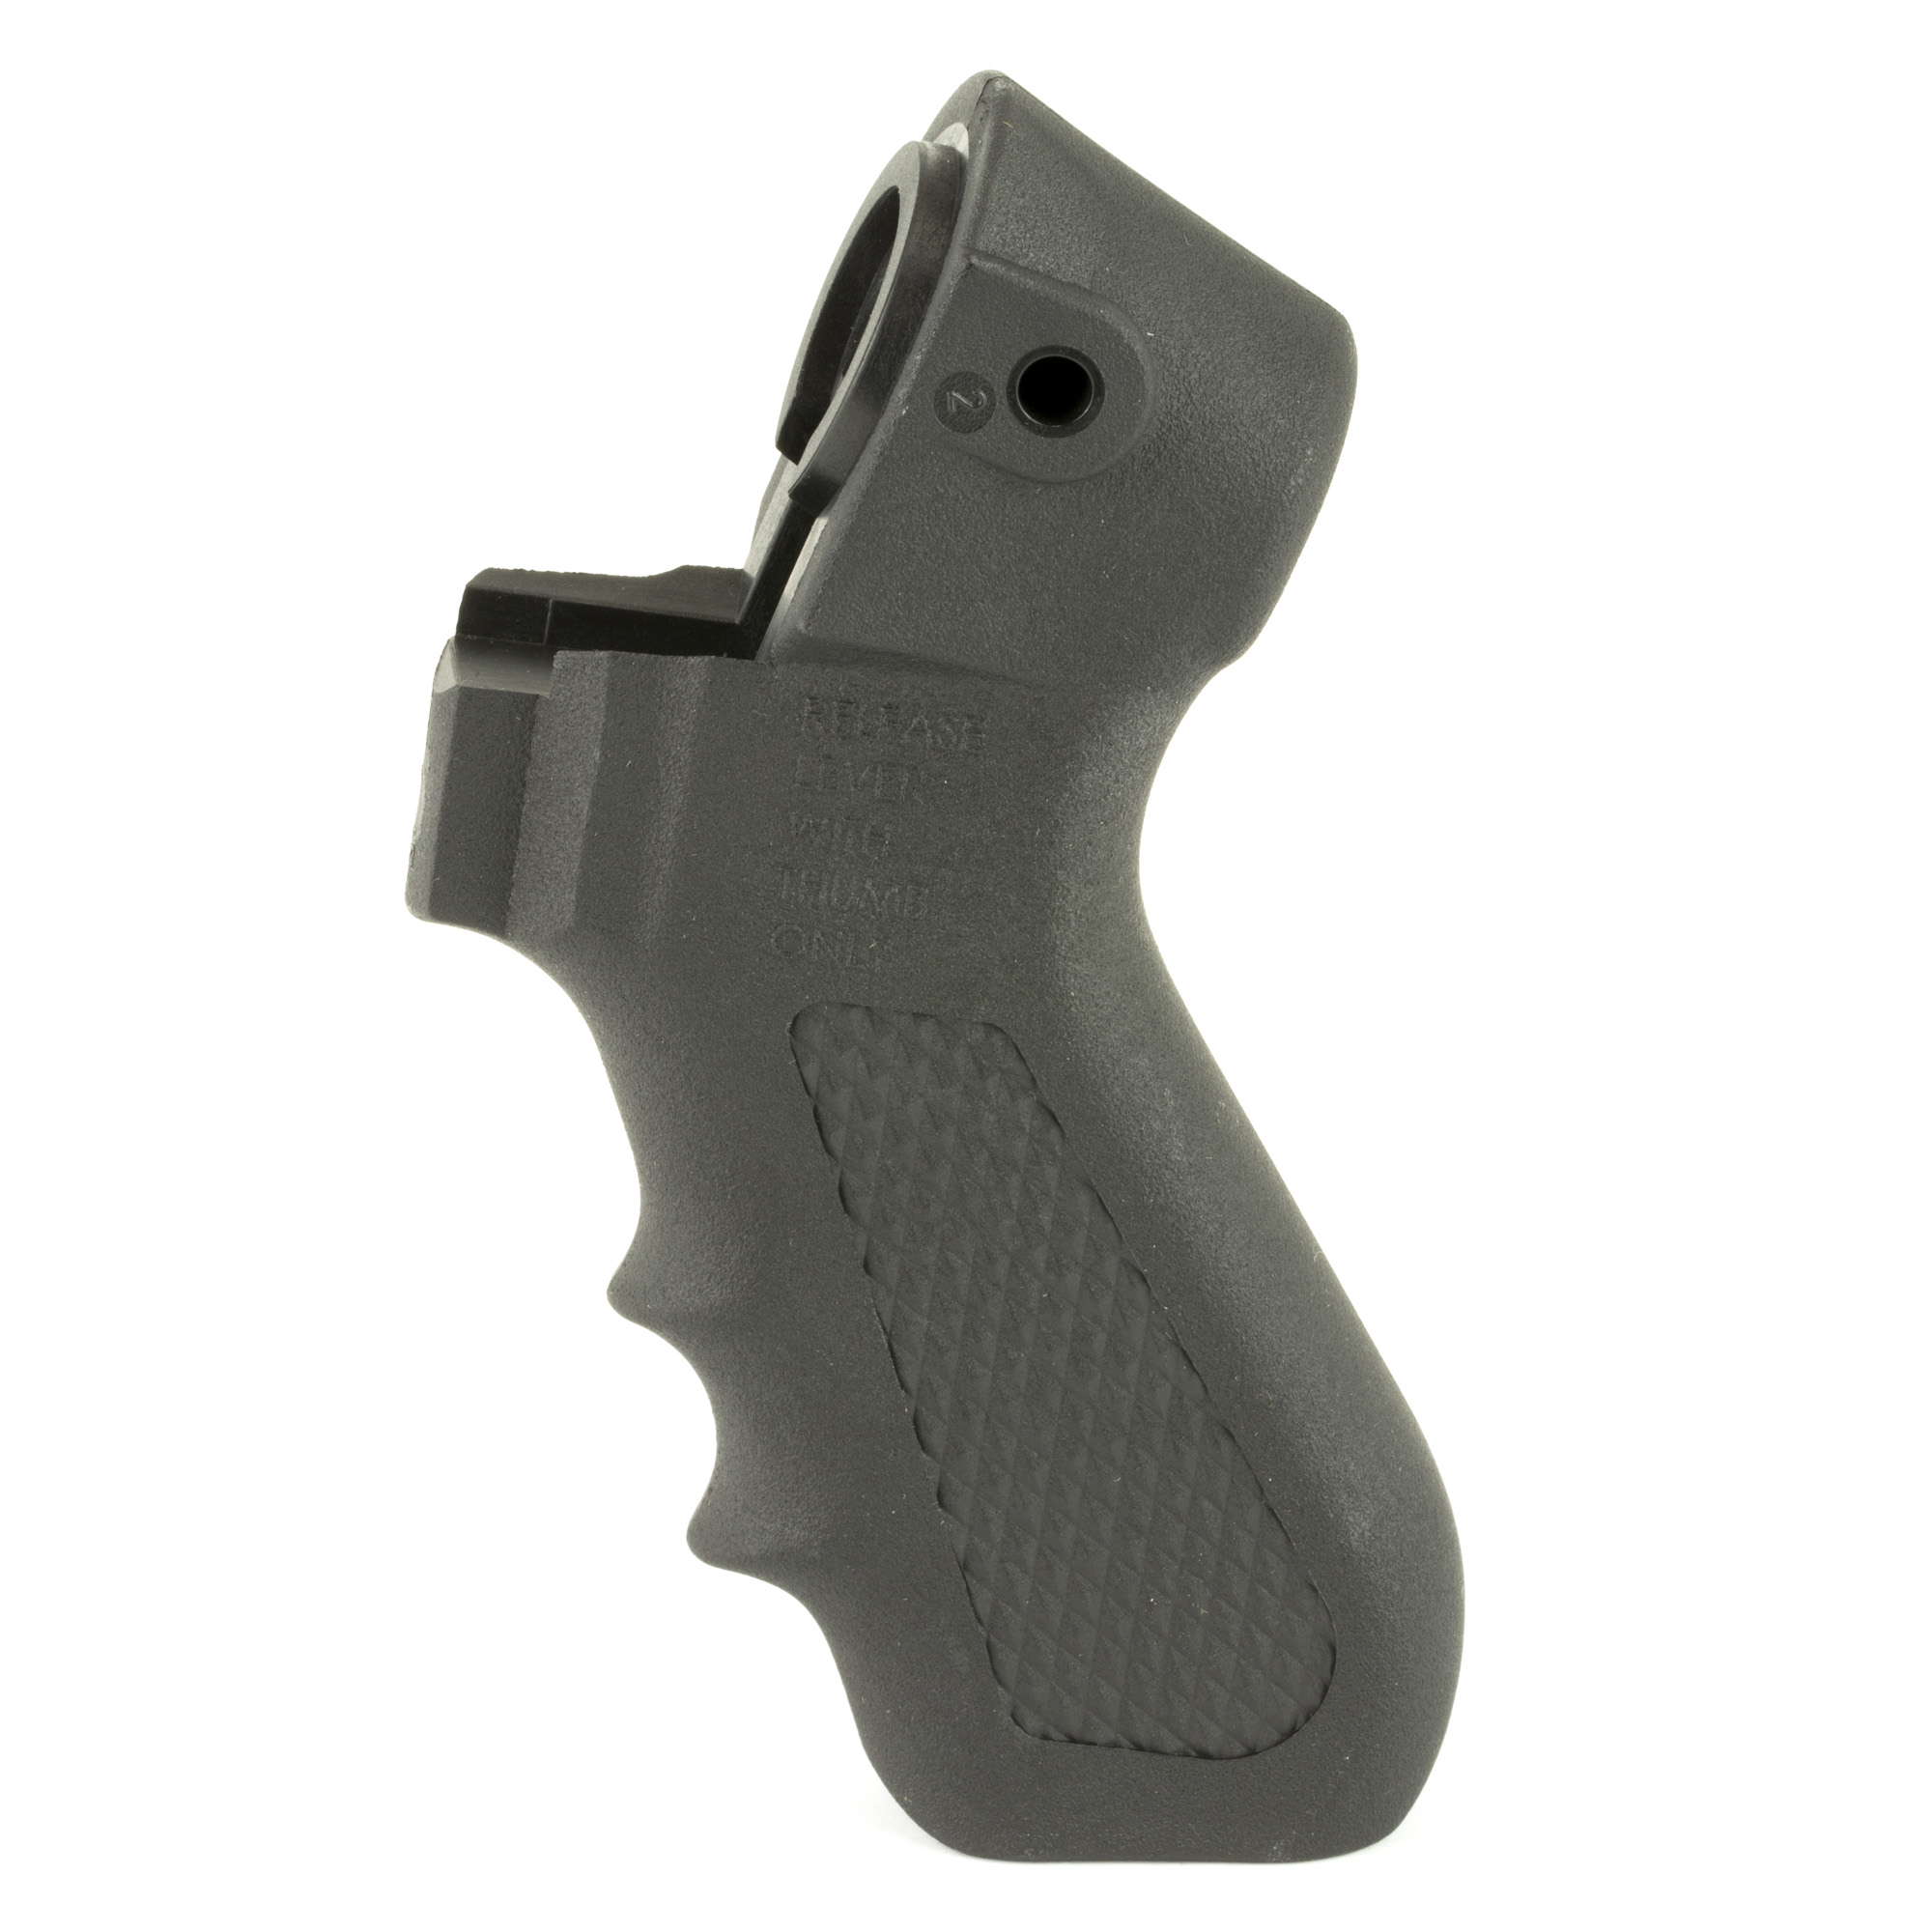 """This Mossberg Pistol Grip Kit for 500/590 12-Gauge Shotguns will turn your ordinary 12-gauge shotgun into one that looks tactical while providing a sure grip and more steady aim with its molded finger grooves. This pistol grip fits Mossberg 500 and 590 12-gauge shotguns. The kit includes a pistol grip"""" pistol grip bolt"""" flat and lock washer"""" rear stud"""" front stud and washer and an Allen wrench so you have everything you need for installation."""